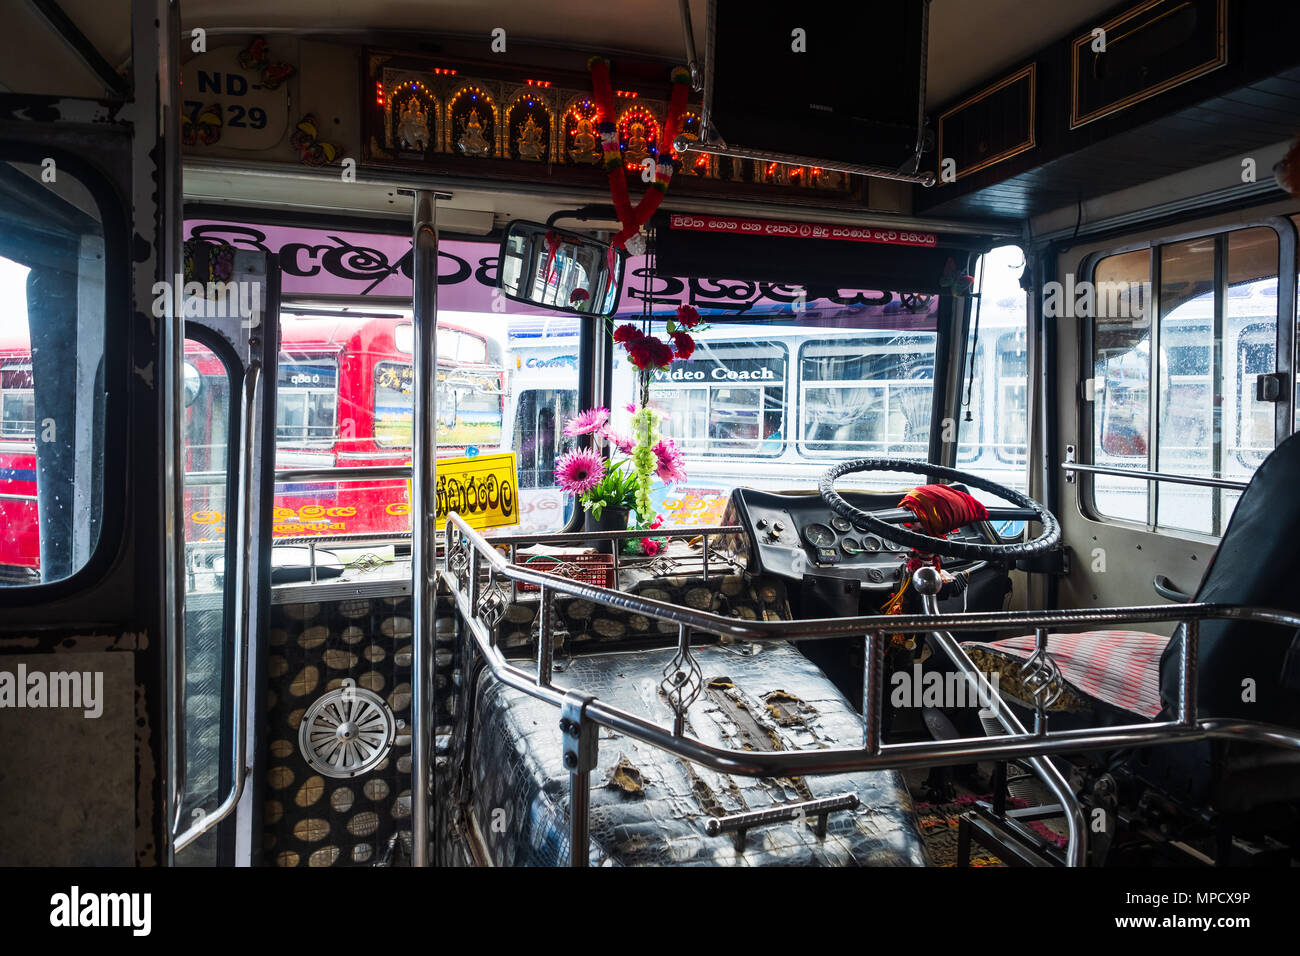 Bandarawela, Sri Lanka - April 11 2018: Inside the asian bus on bus station - Stock Image